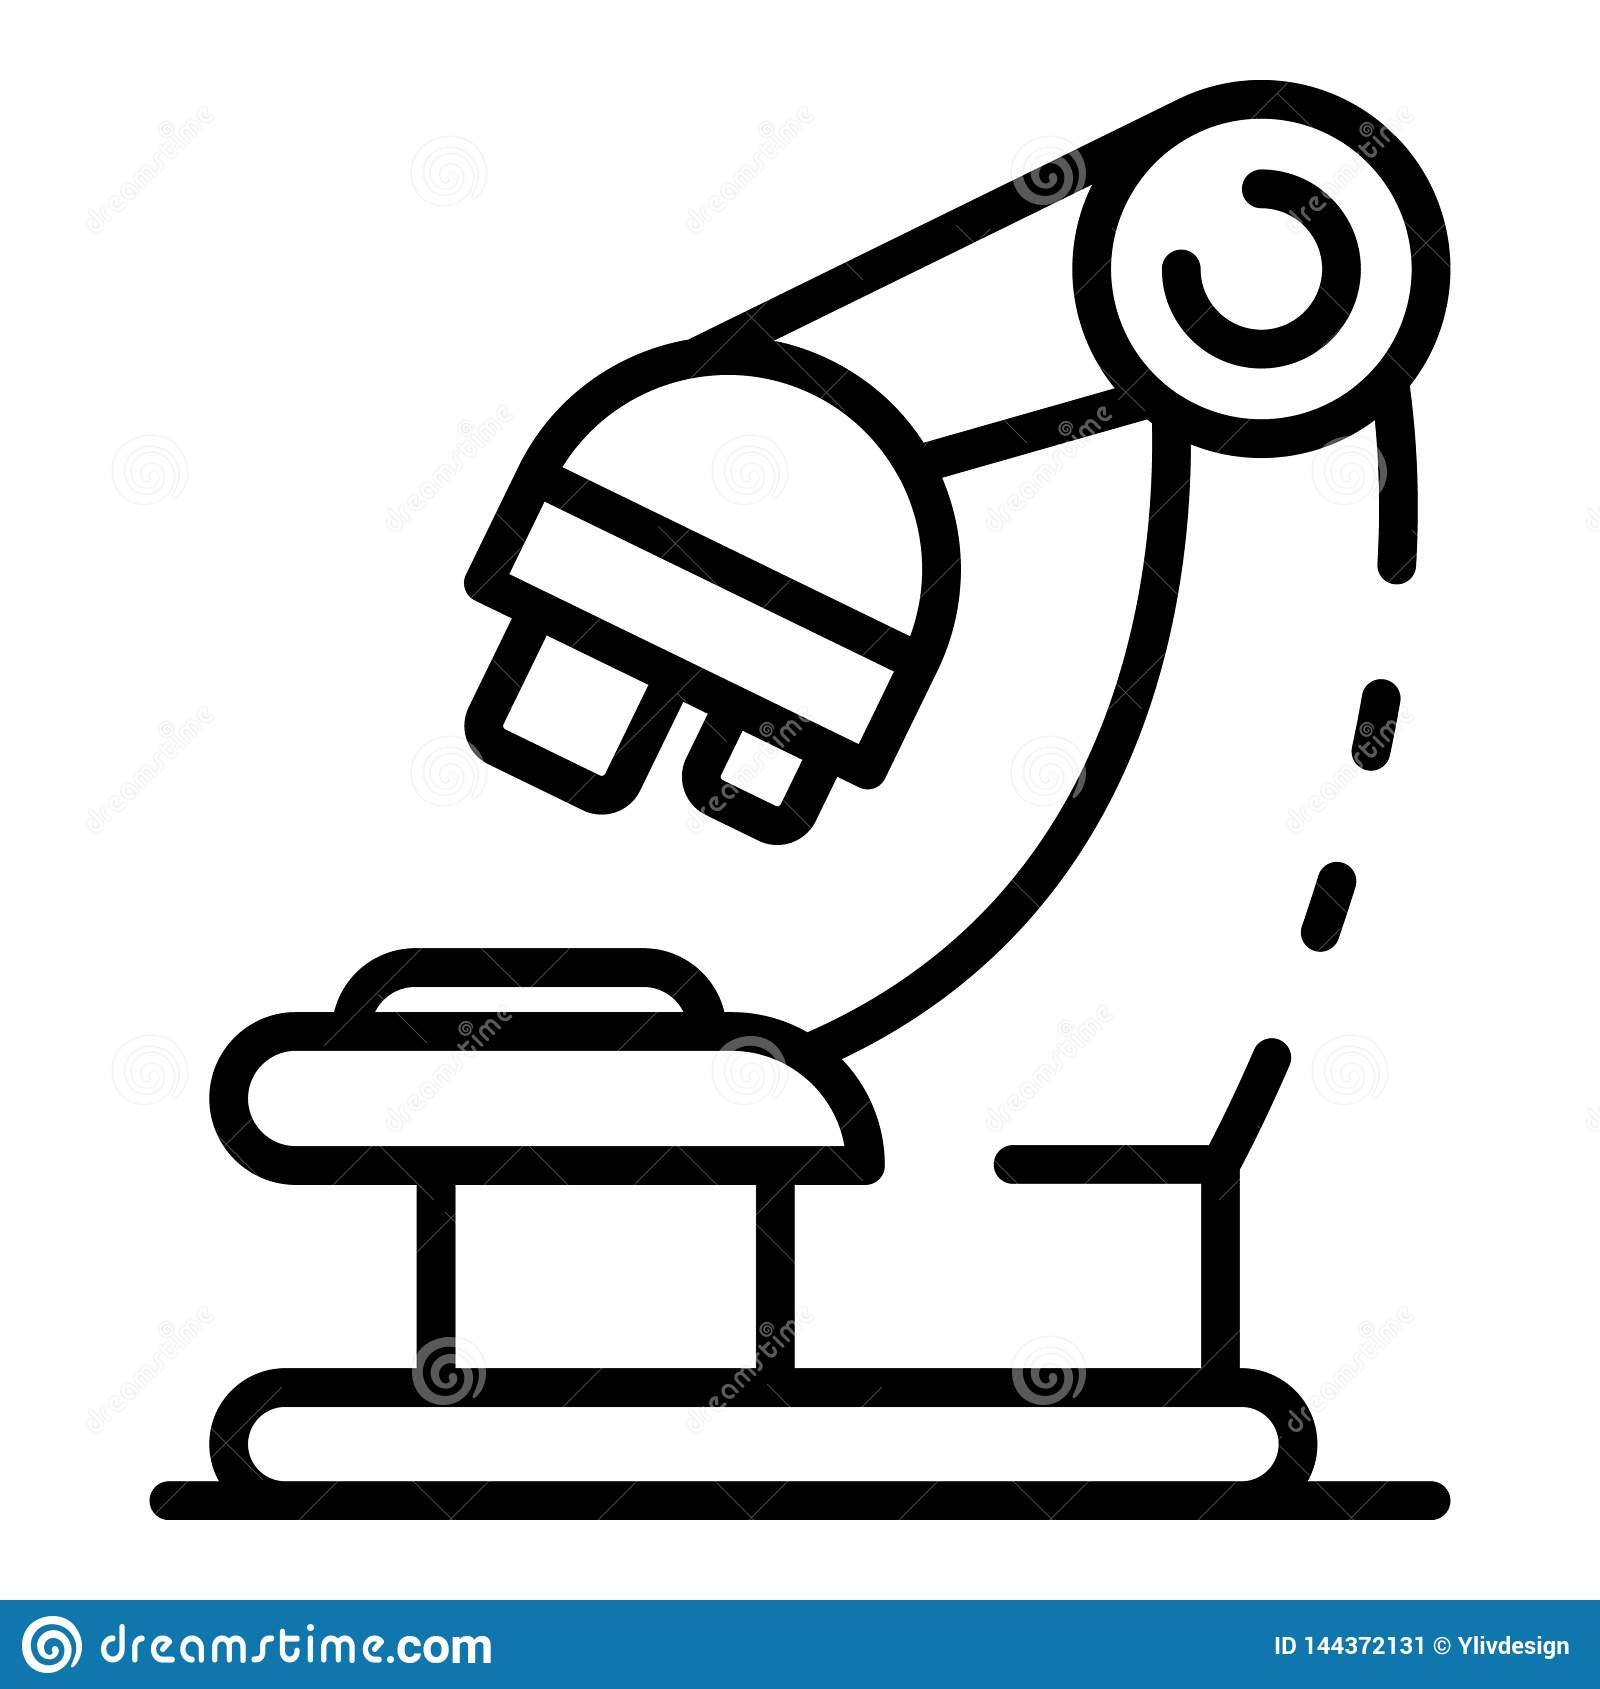 Forensic Microscope Icon Outline Style Stock Vector Illustration Of Black Biology 144372131